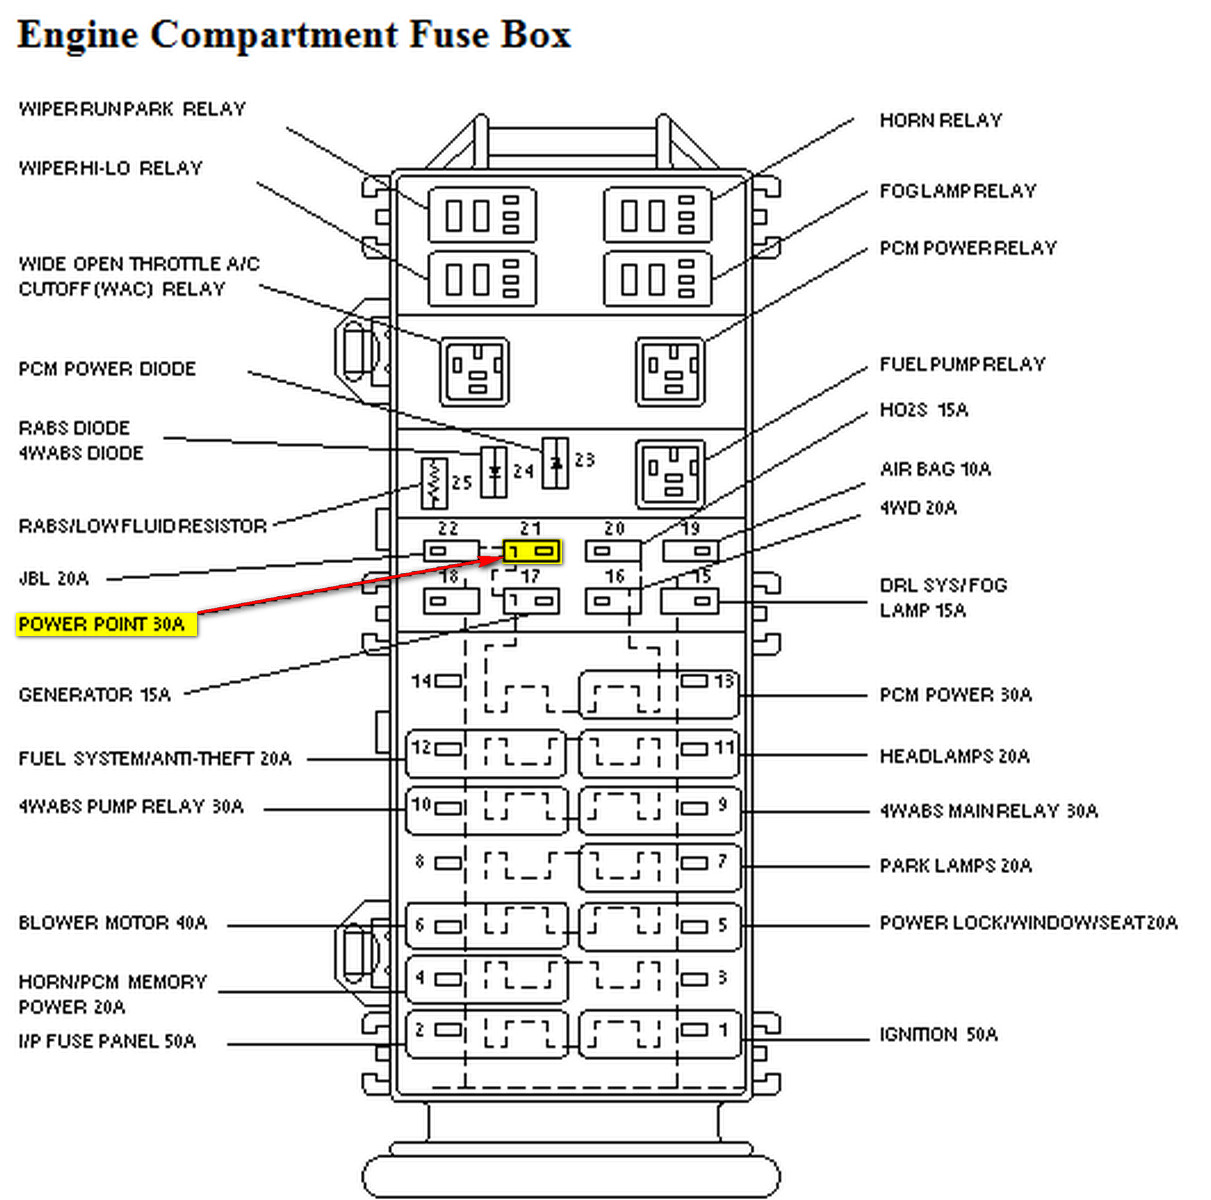 hight resolution of 1997 ford fuse box diagram wiring diagram todays 1997 ford ranger fuel pump relay 1997 ford ranger fuse box diagram under hood